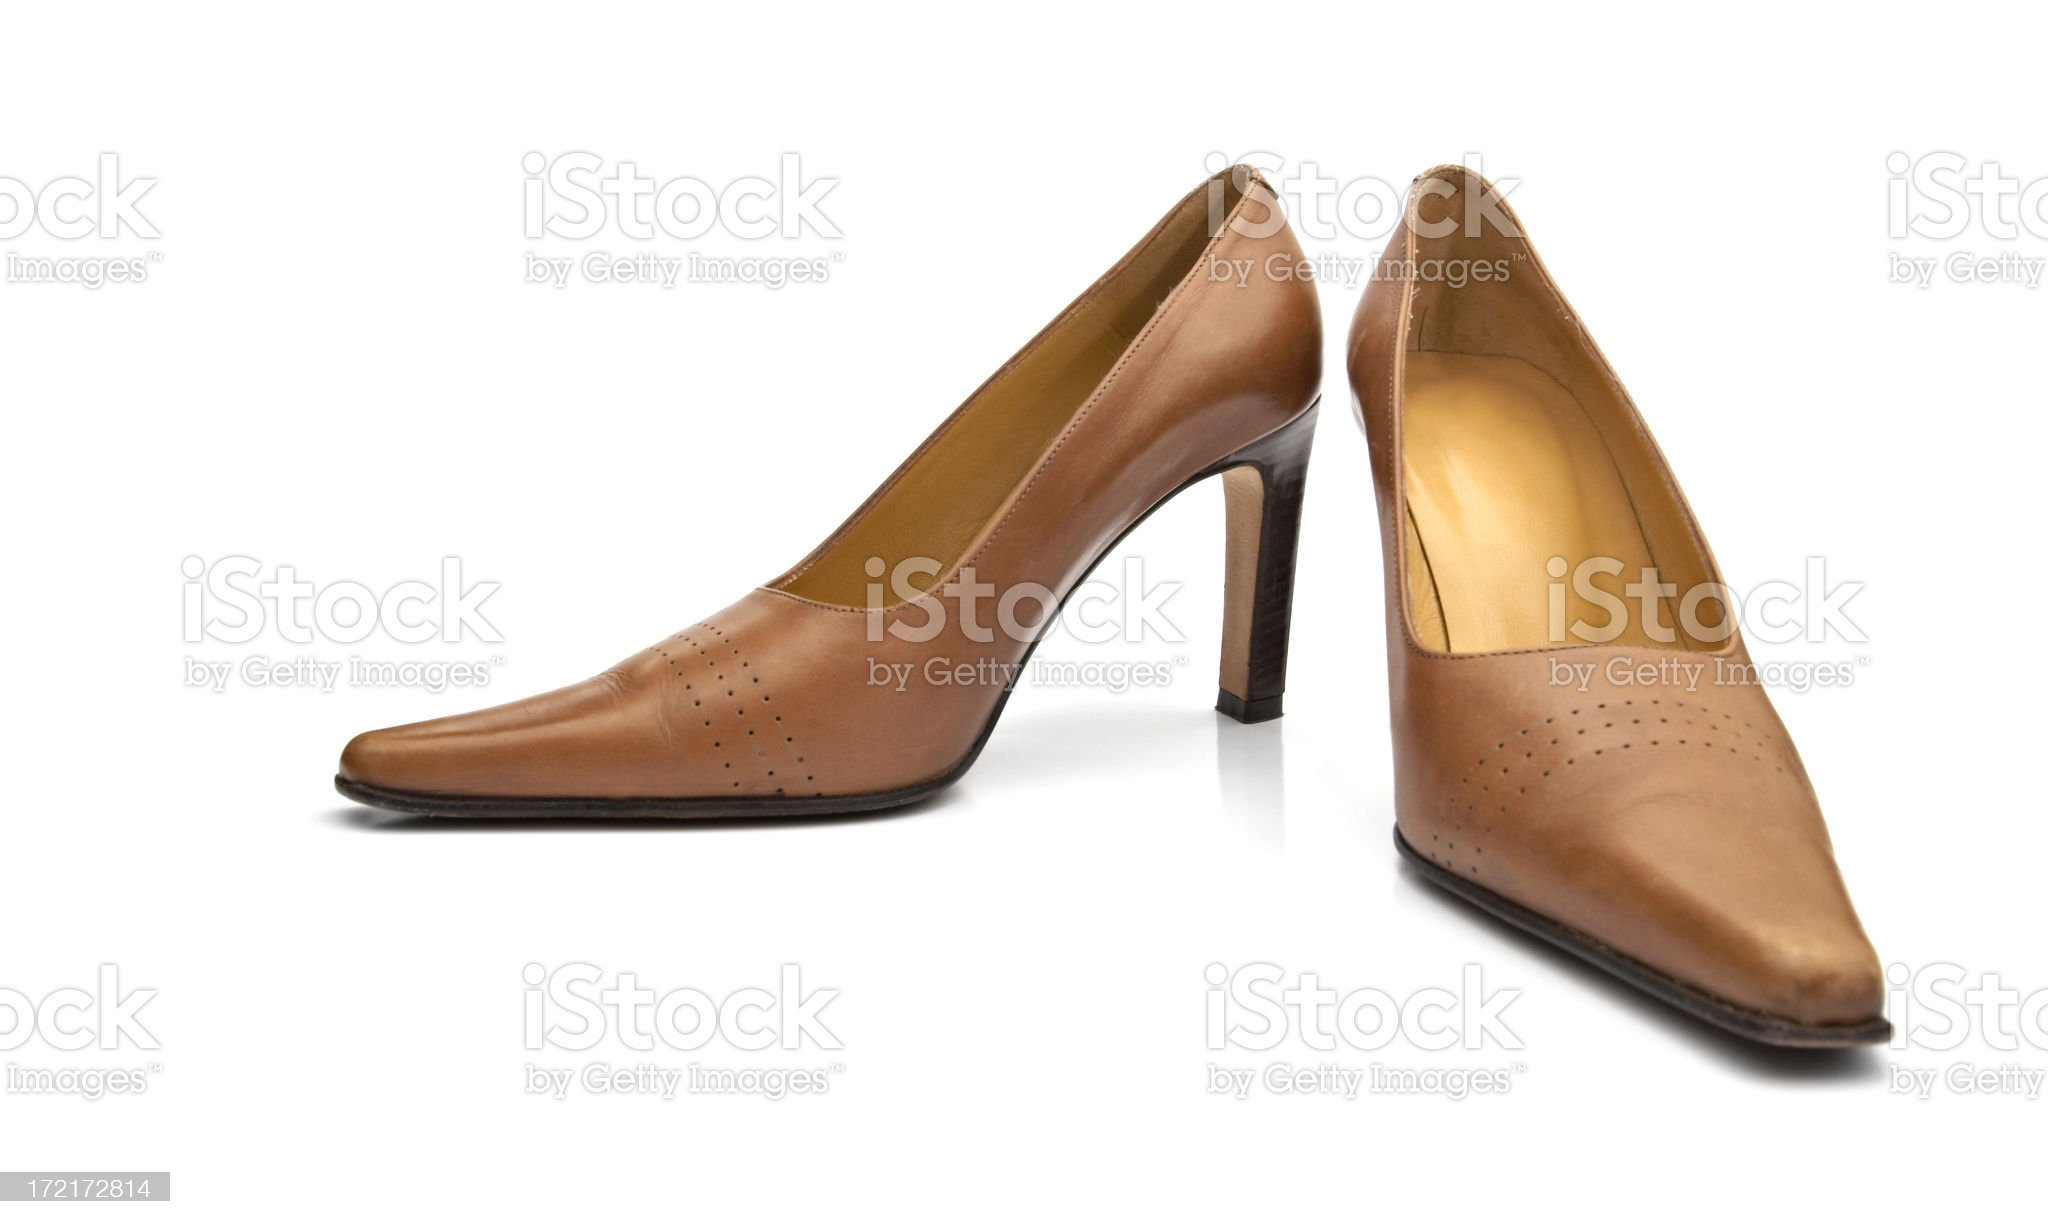 Women's dress shoes royalty-free stock photo